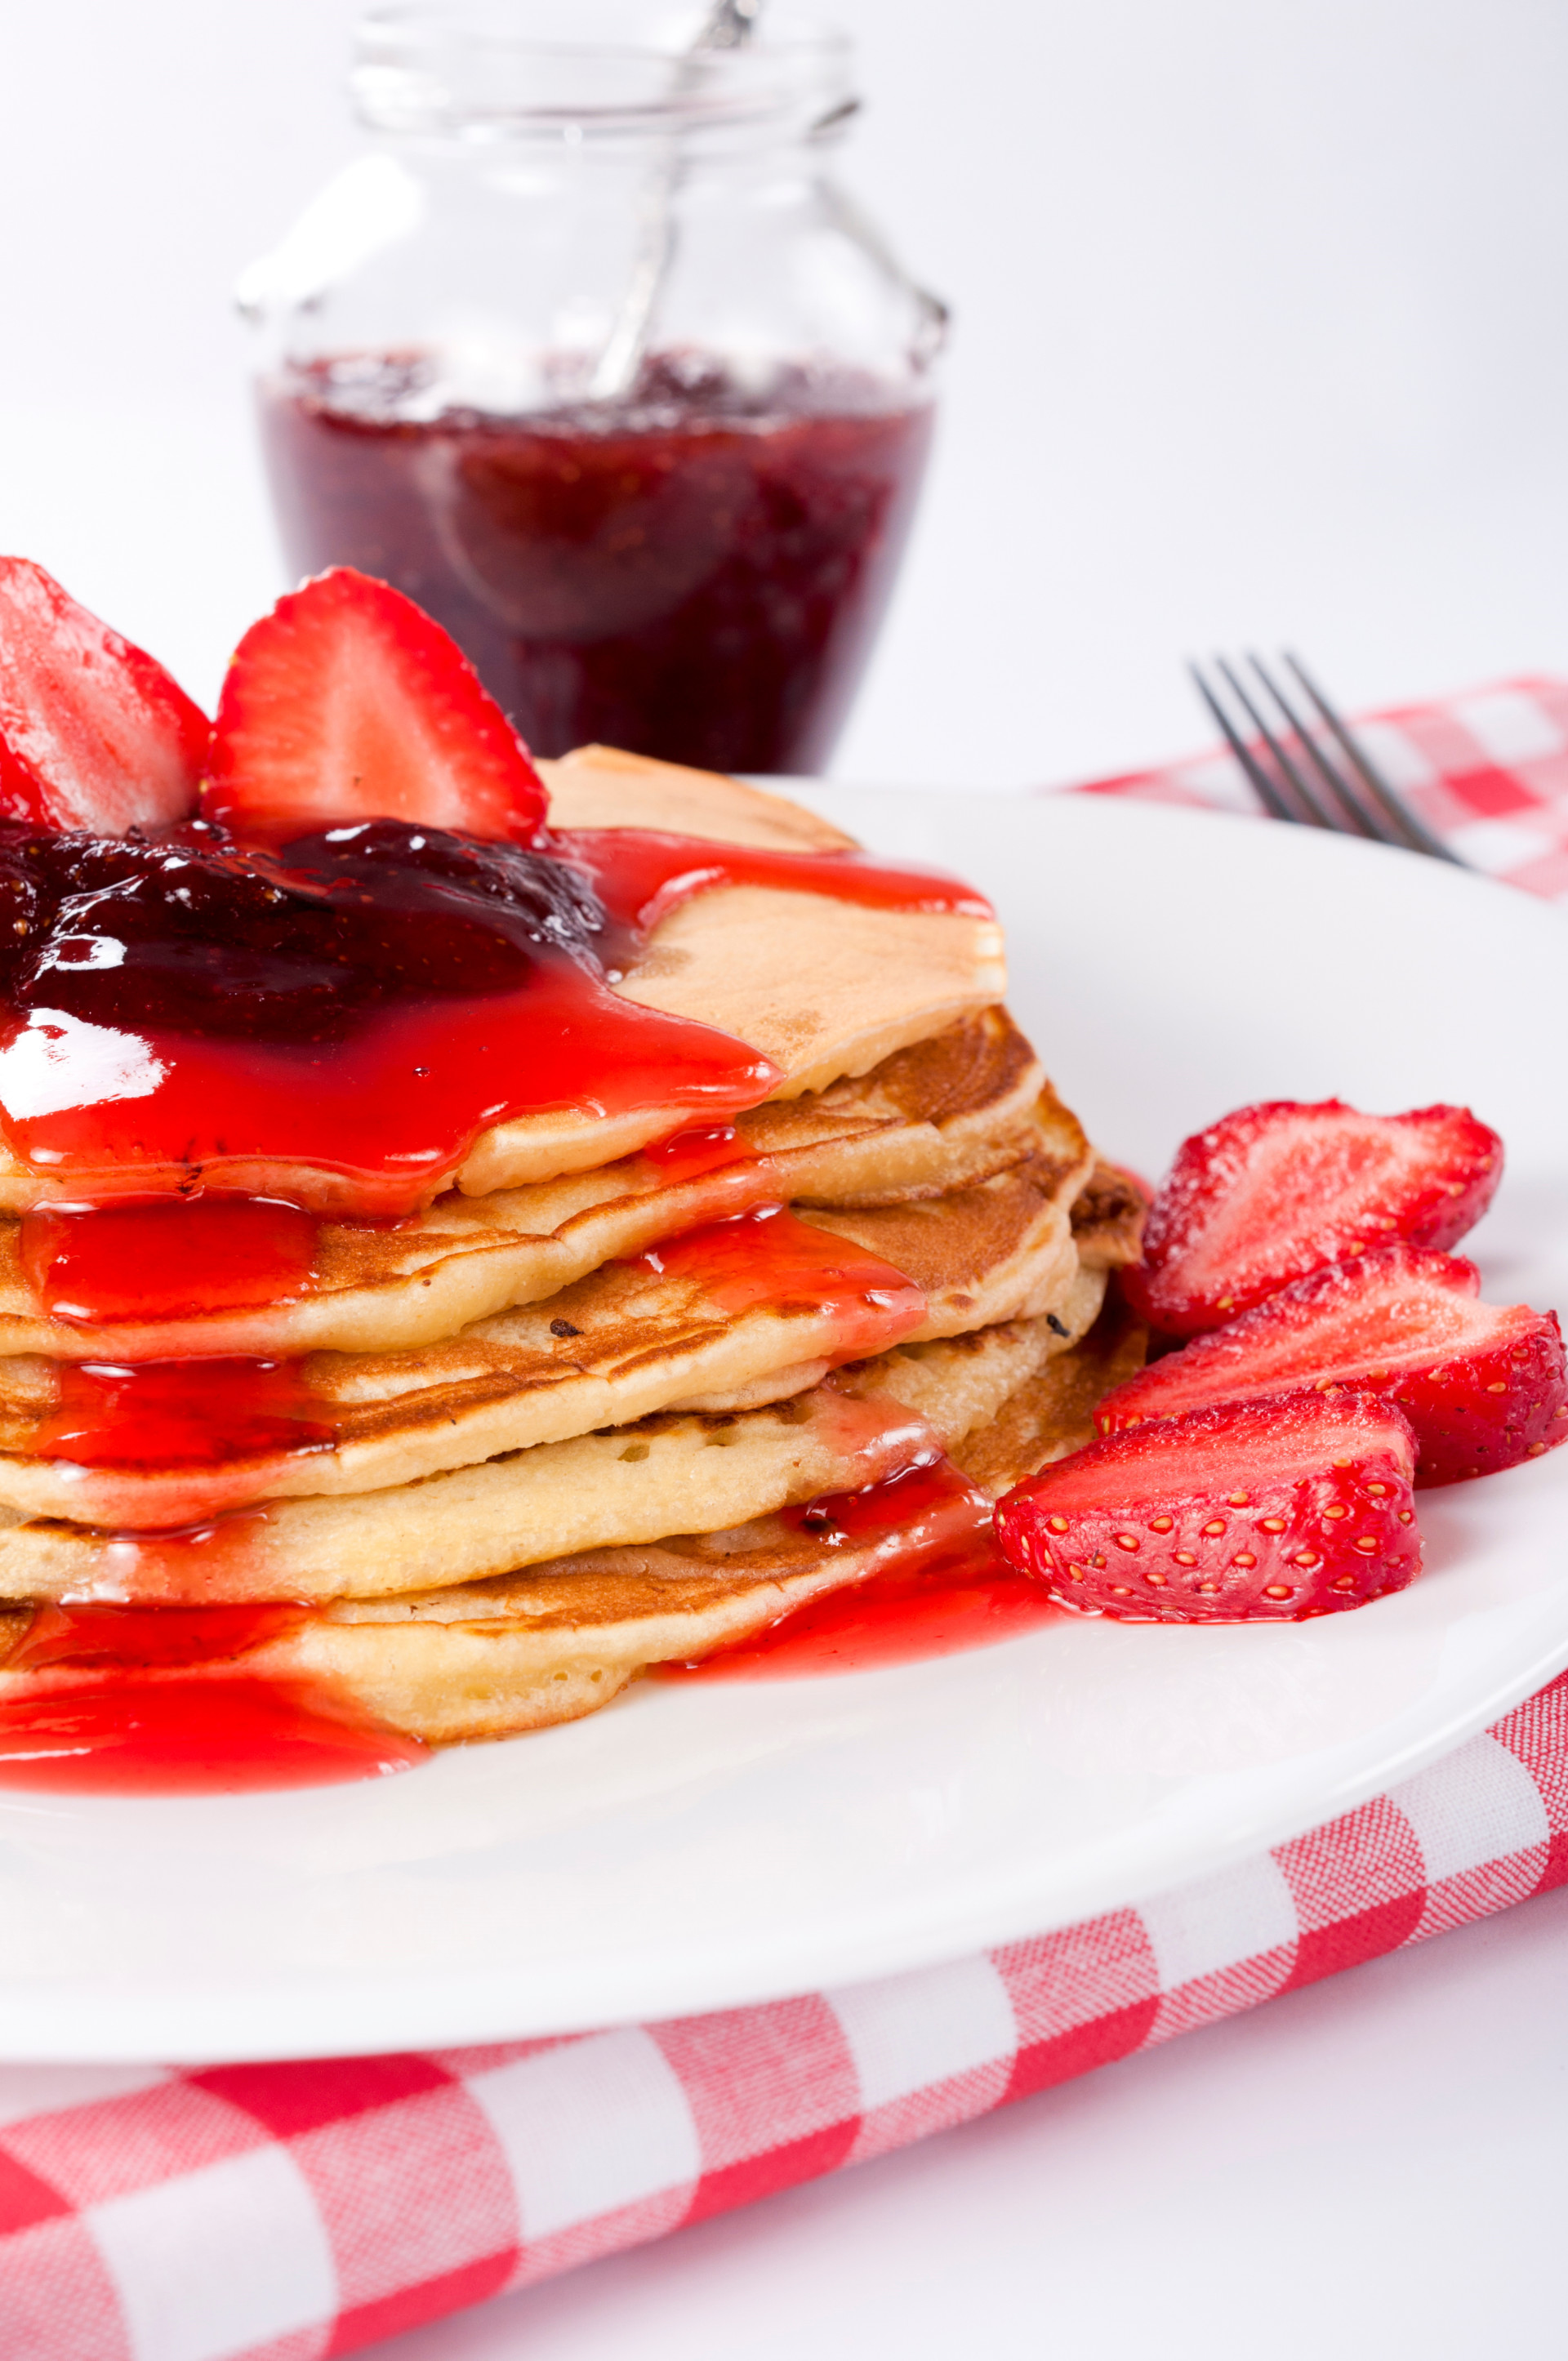 Fluffy Buttermilk Pancakes with Strawberry Preserves